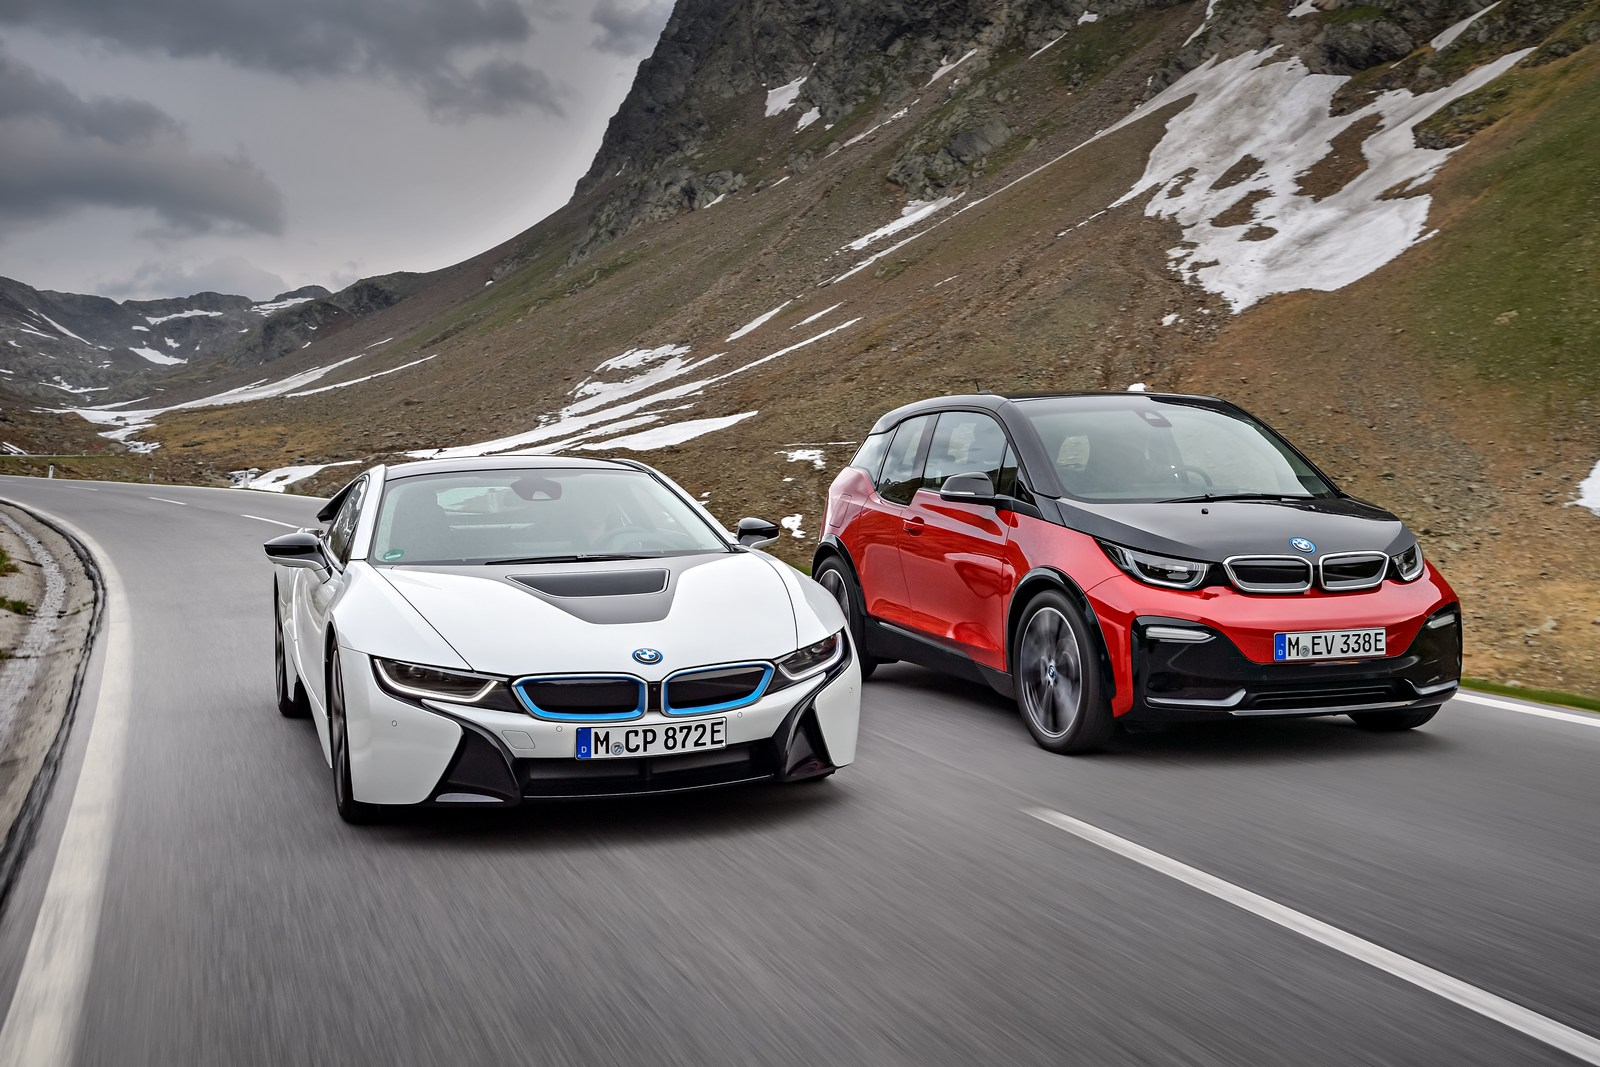 bmw-i3-production-hits-100000-units-i8-r